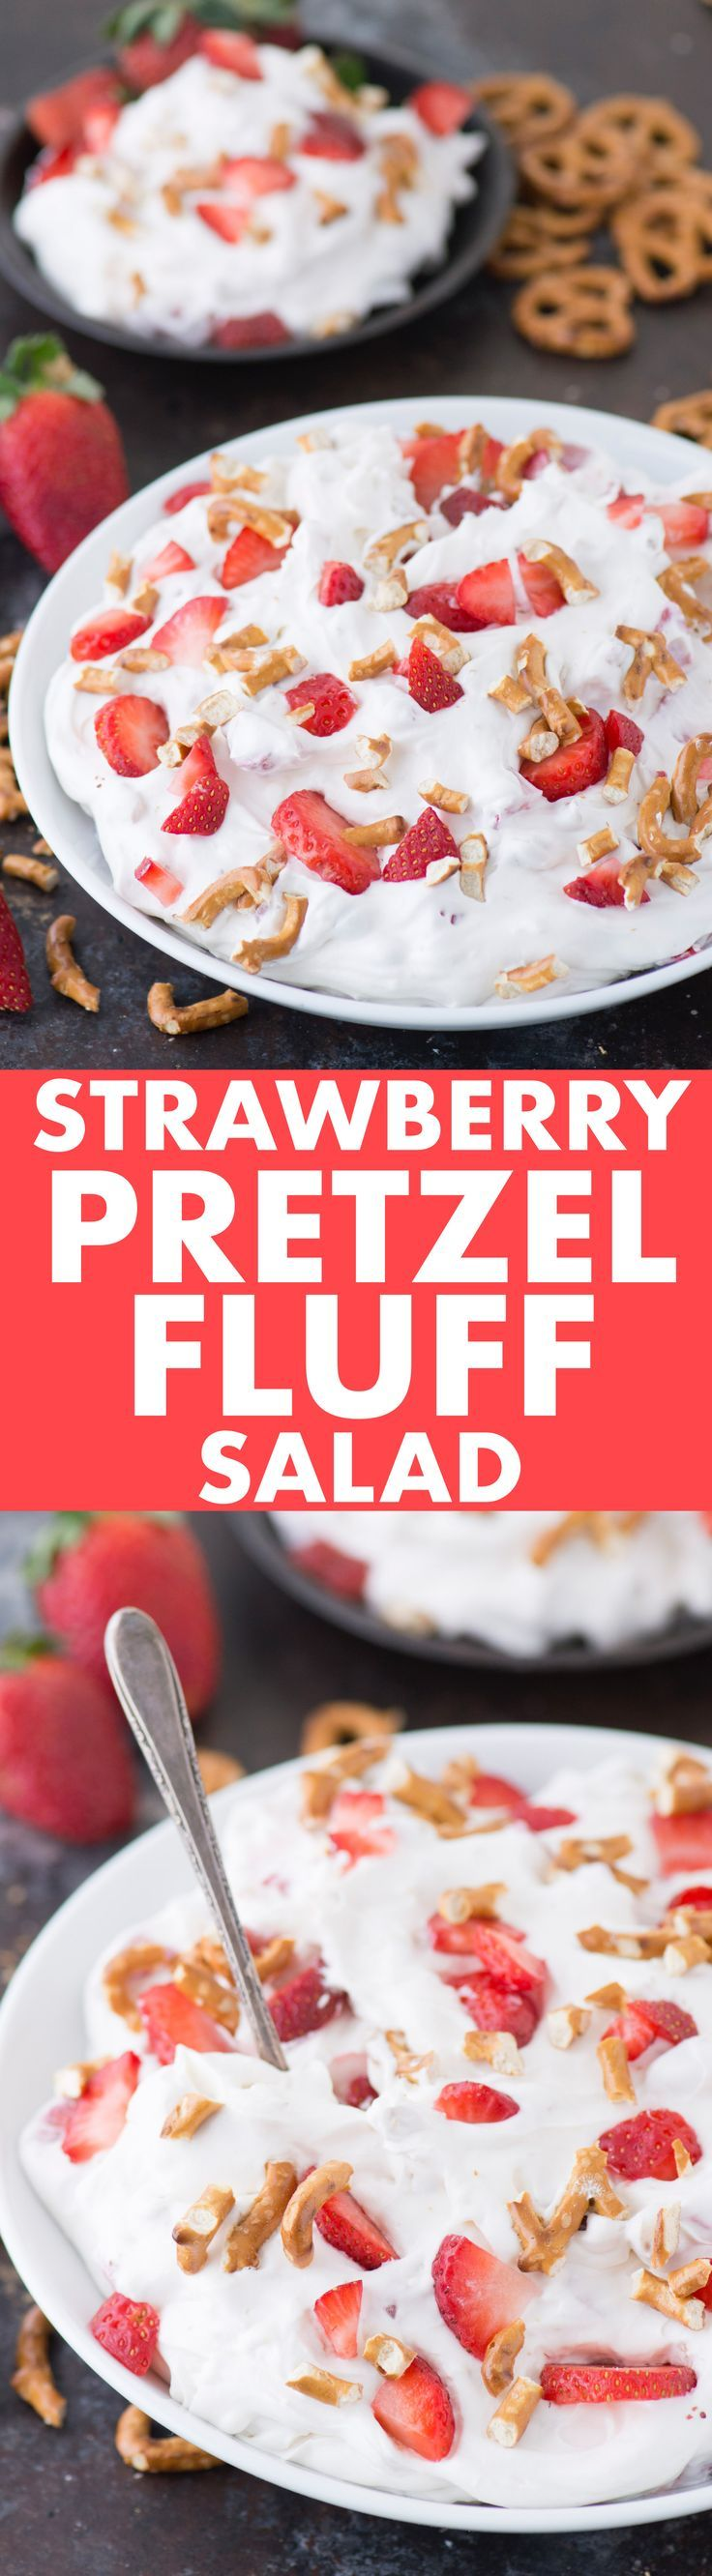 STRAWBERRY PRETZEL FLUFF SALAD! A dessert salad that reminds us of the classic strawberry pretzel bar dessert. A picnic recipe you can make in 10 minutes!